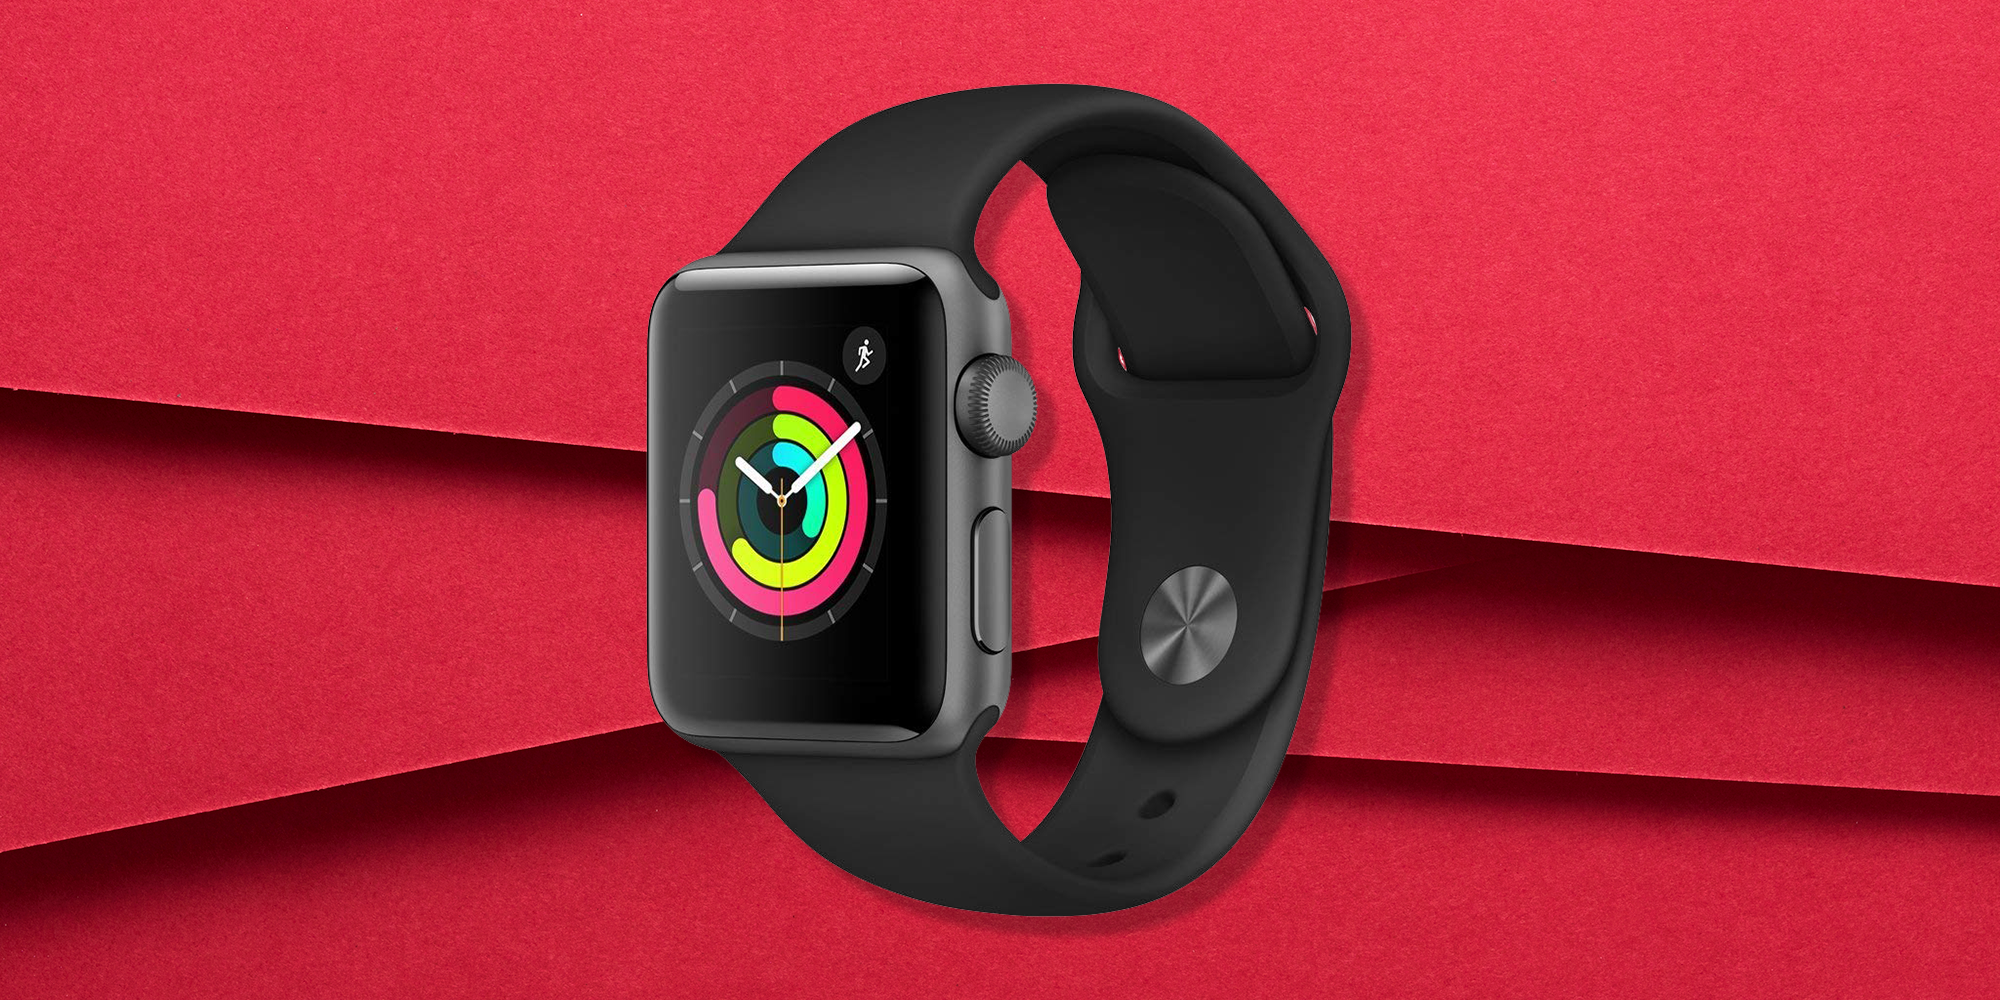 The Apple Watch Series 3 Is On Sale For $80 Off At Walmart Right Now